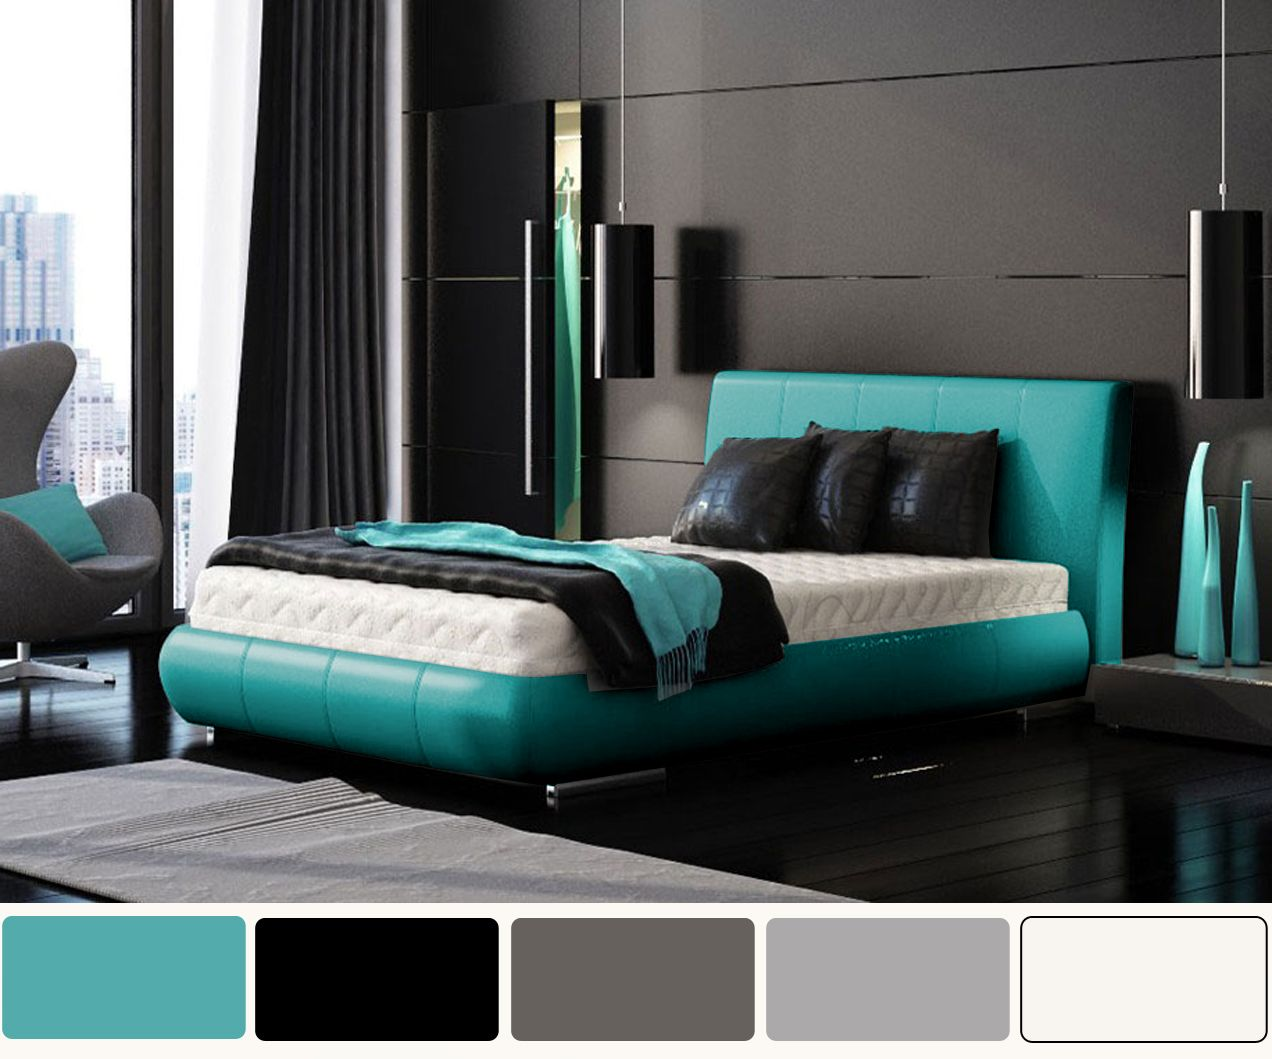 30 Turquoise Room Ideas For Your Home